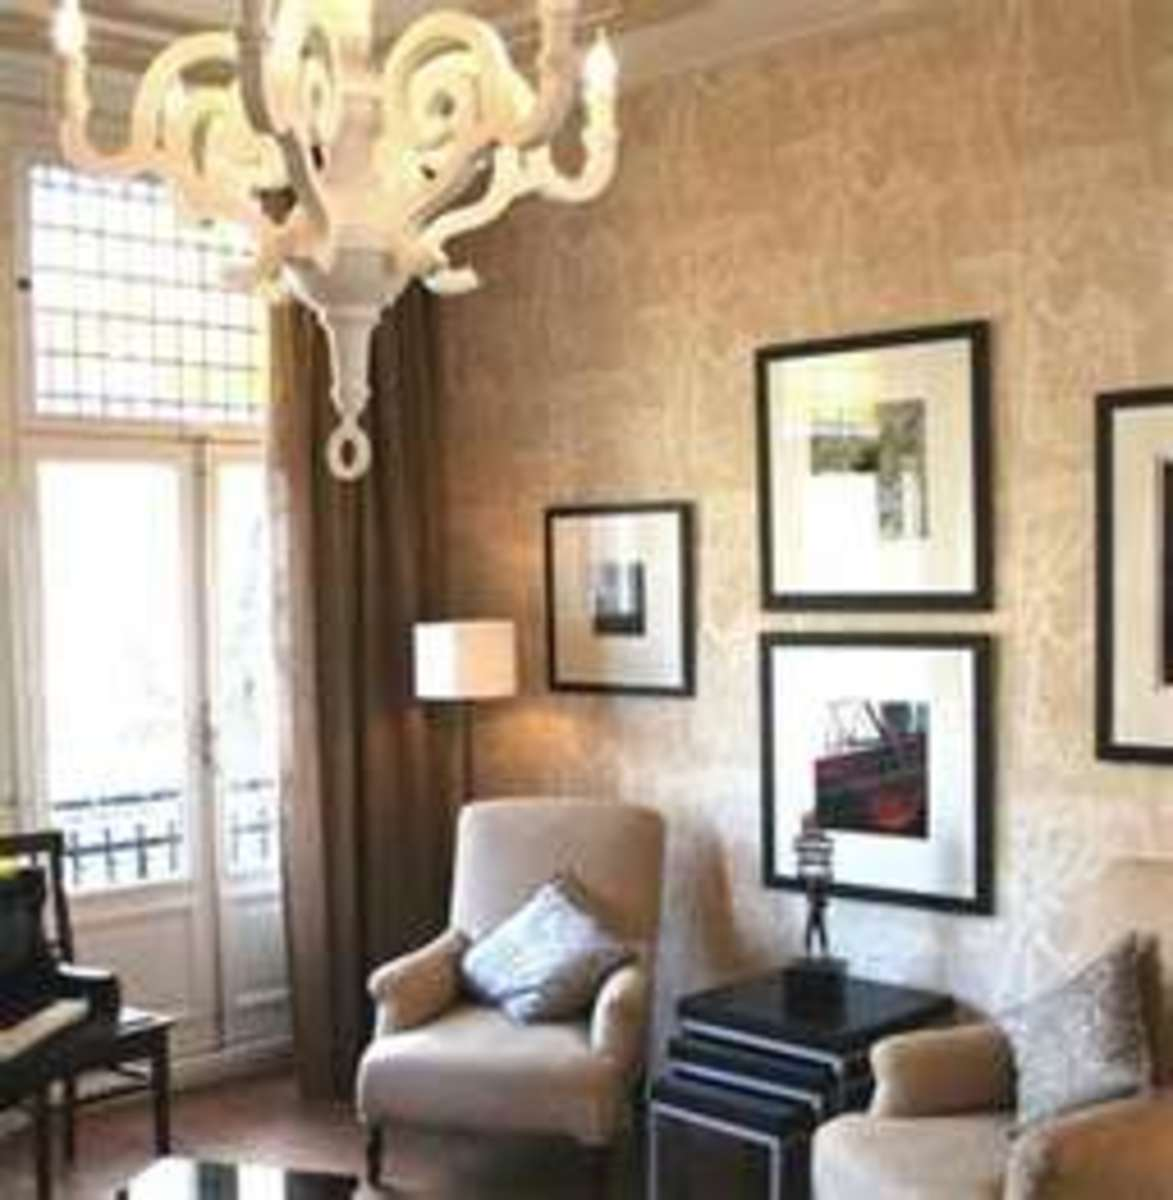 Image credit: http://jokamfamily.com/luxurious-elegant-townhouse-interior-various-finishing.com